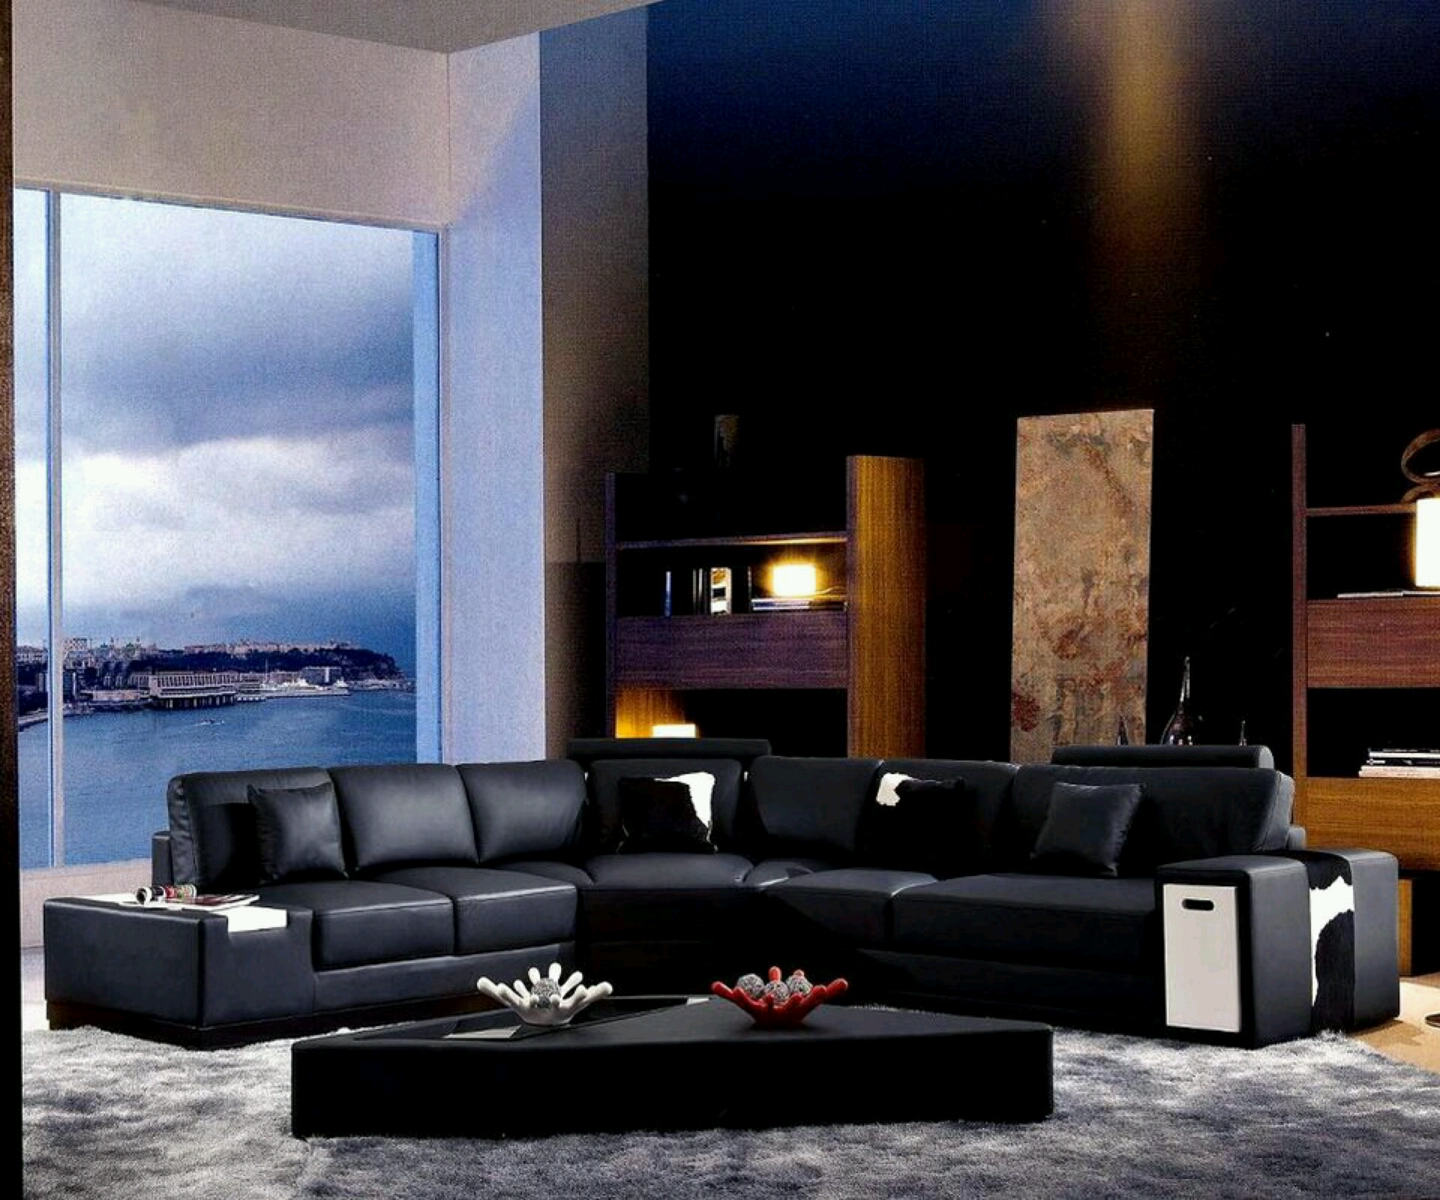 New home designs latest luxury living rooms interior for Living room pics